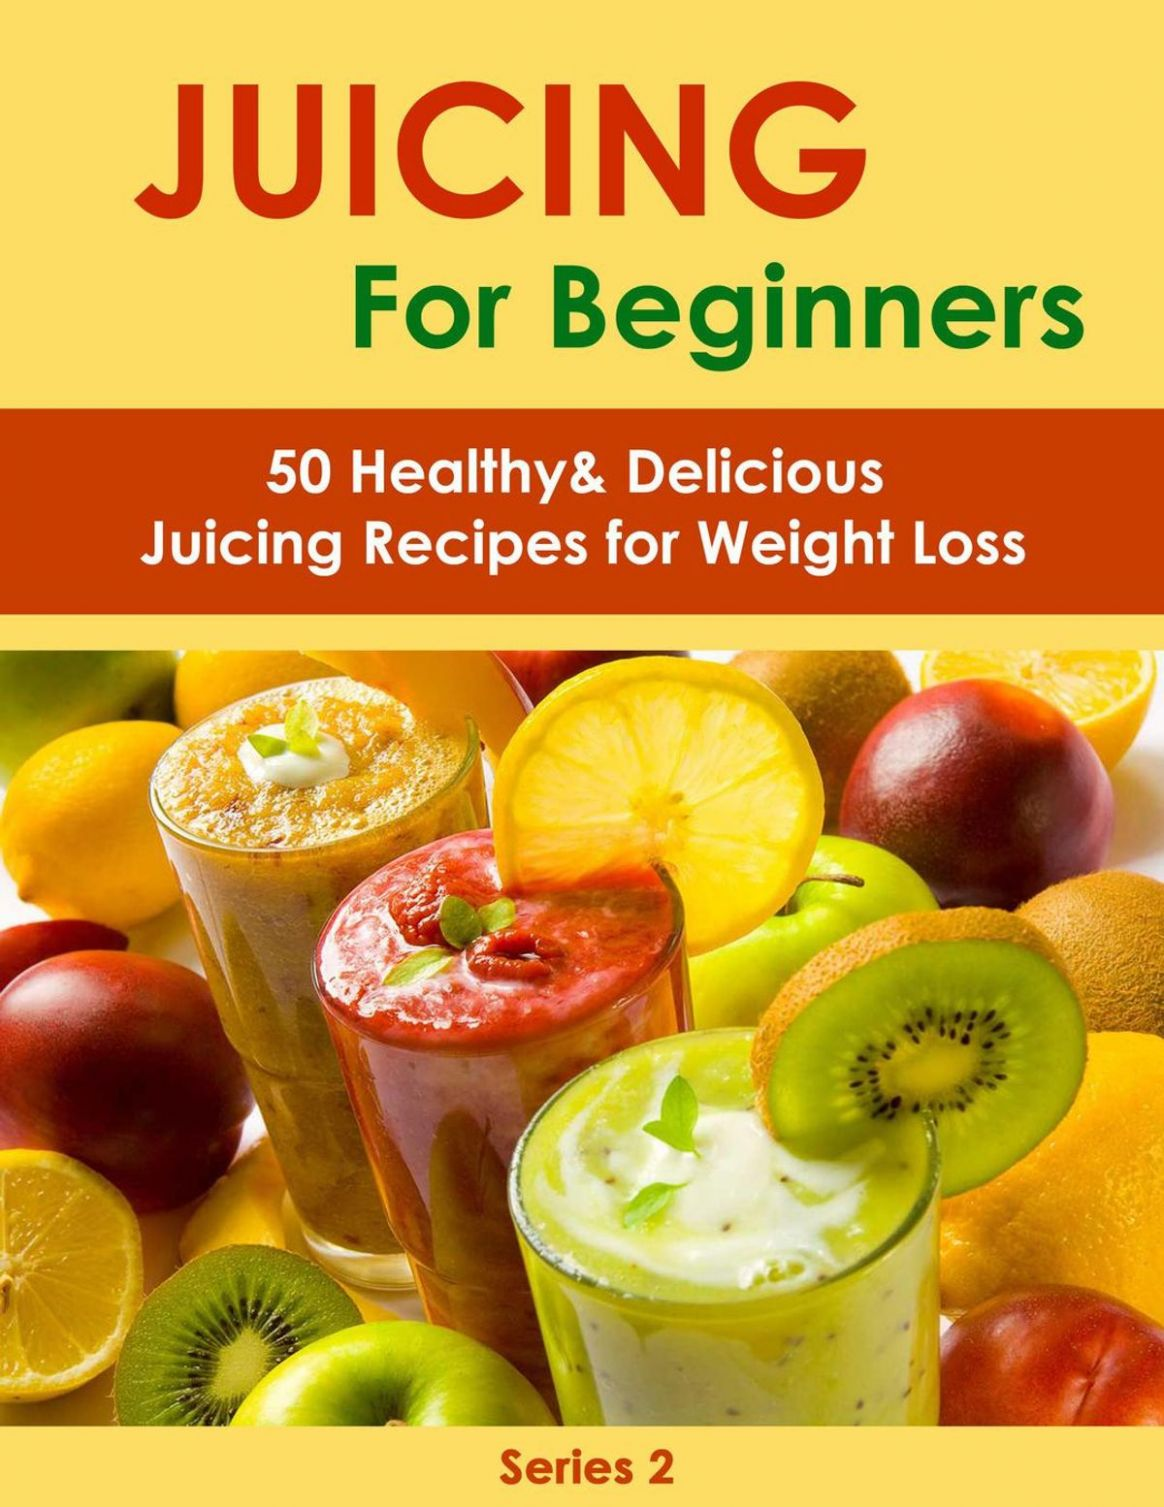 Juicing for Beginners:11 Healthy&Delicious Juicing Recipes for Weight Loss  ebook by Sienna Hardy - Rakuten Kobo - Juicing Recipes For Weight Loss That Taste Good